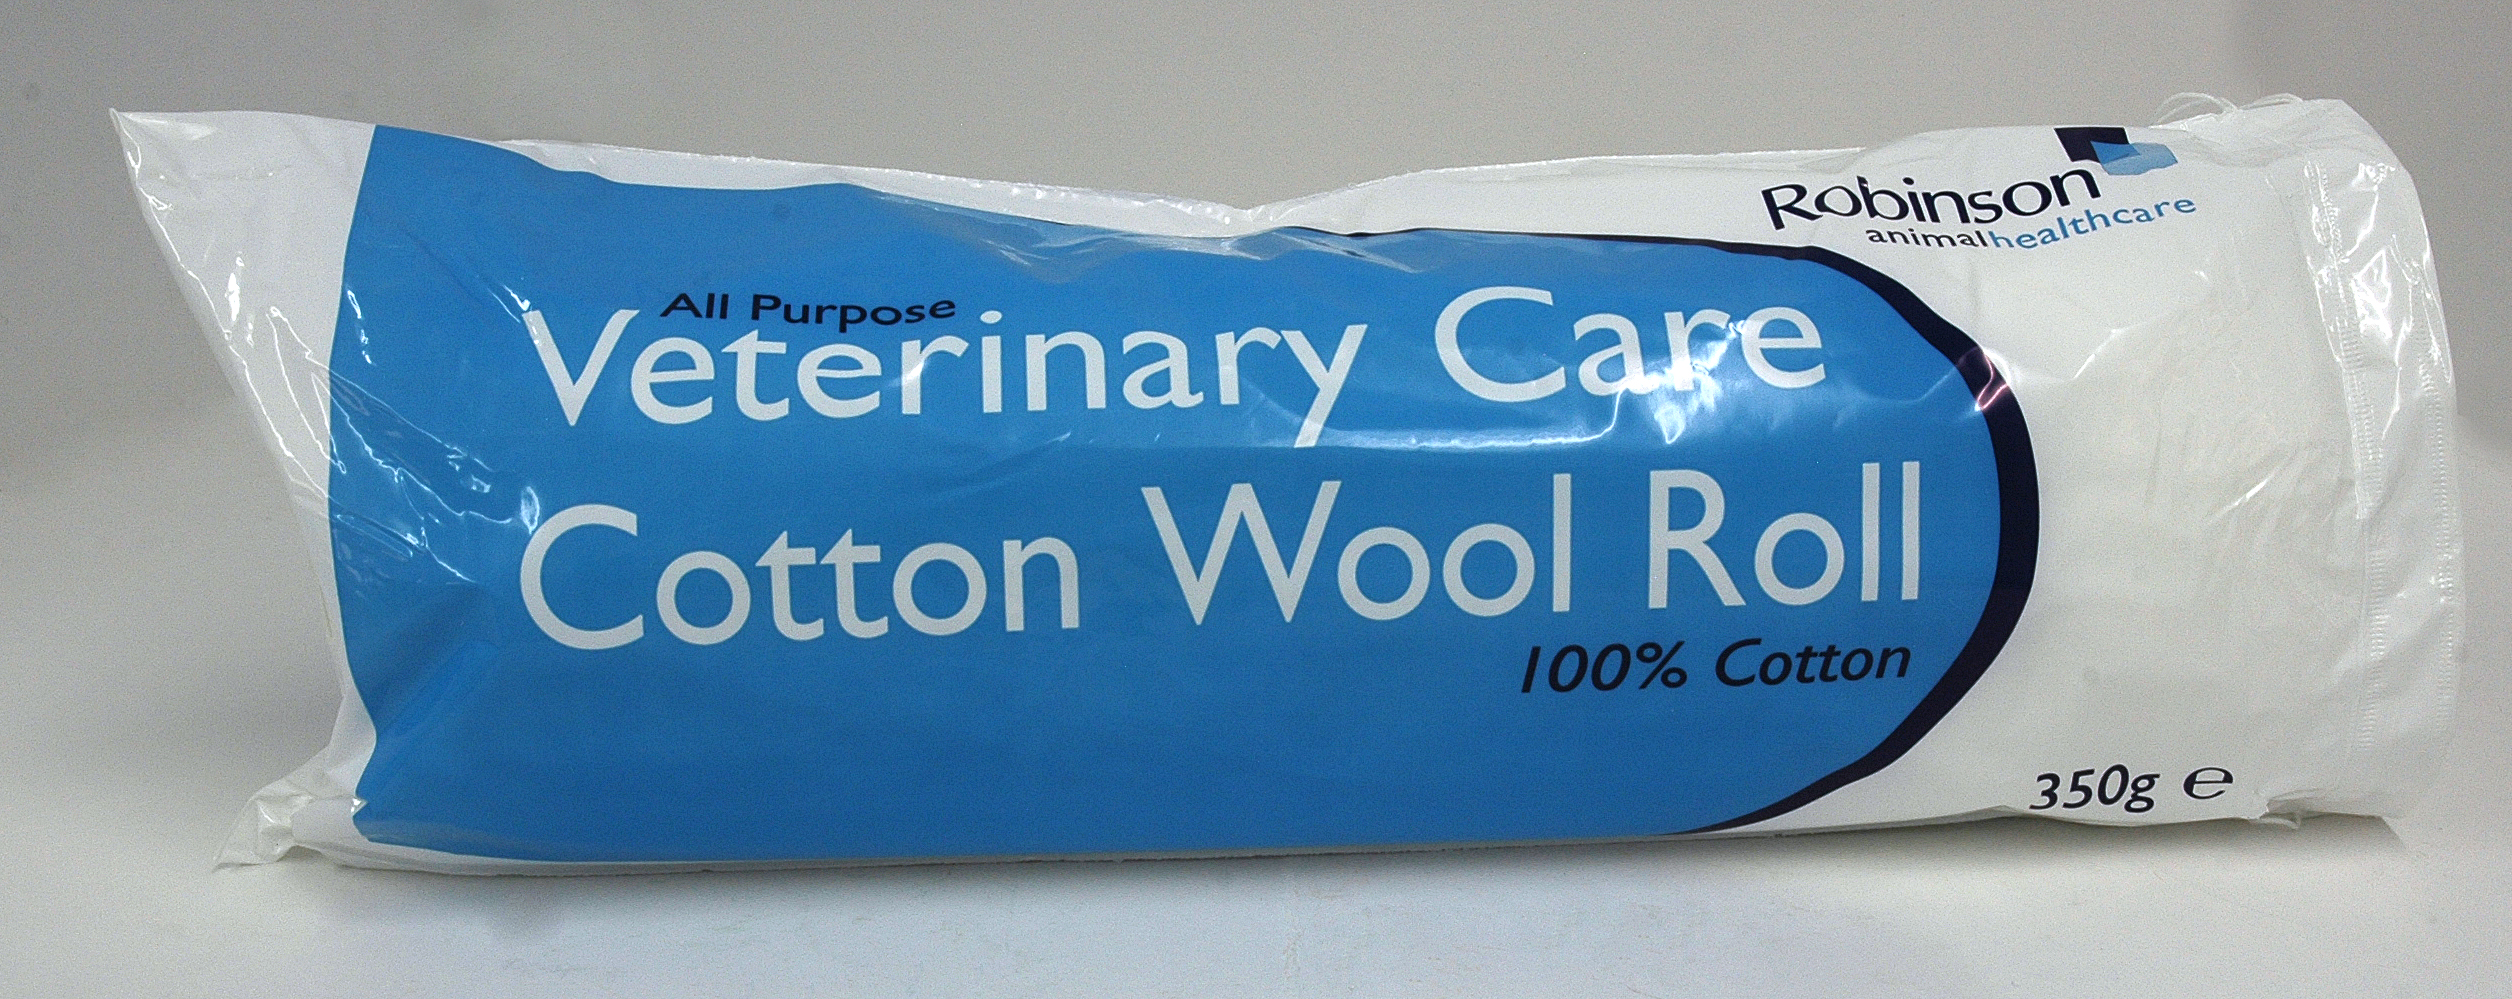 Robinson Cotton Wool